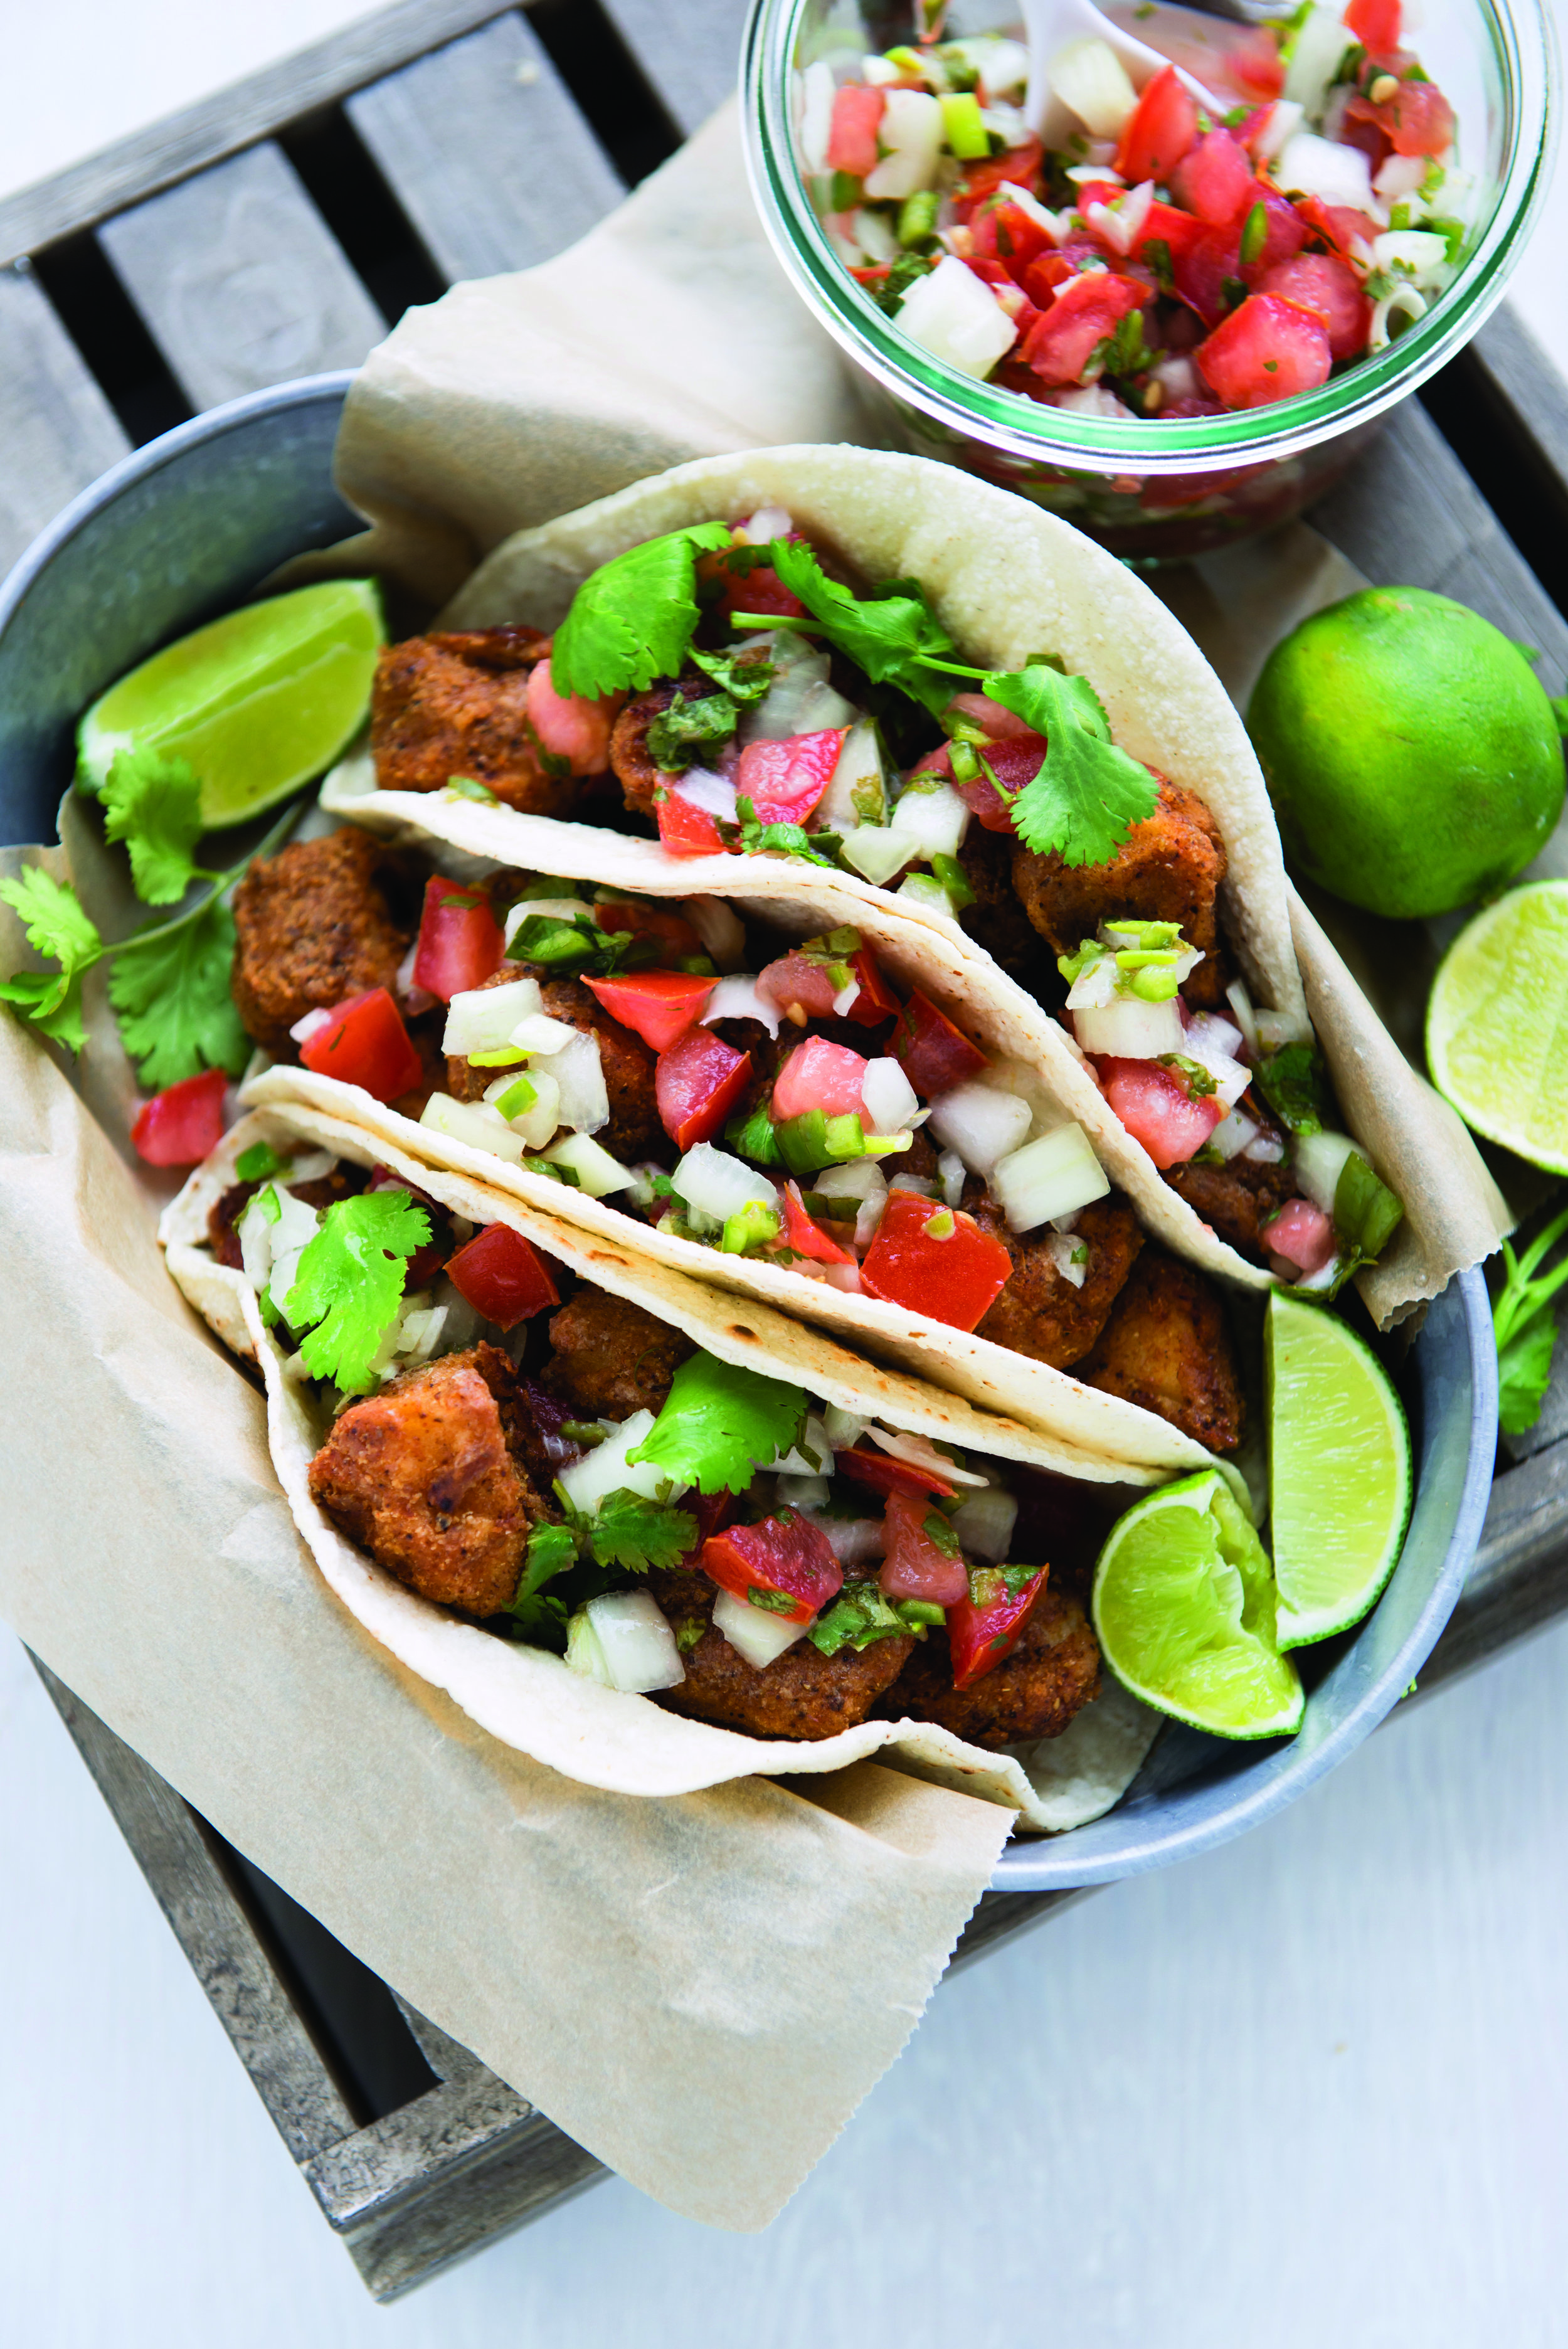 EASY FISH TACOS. Photo provided by Lisa Leake